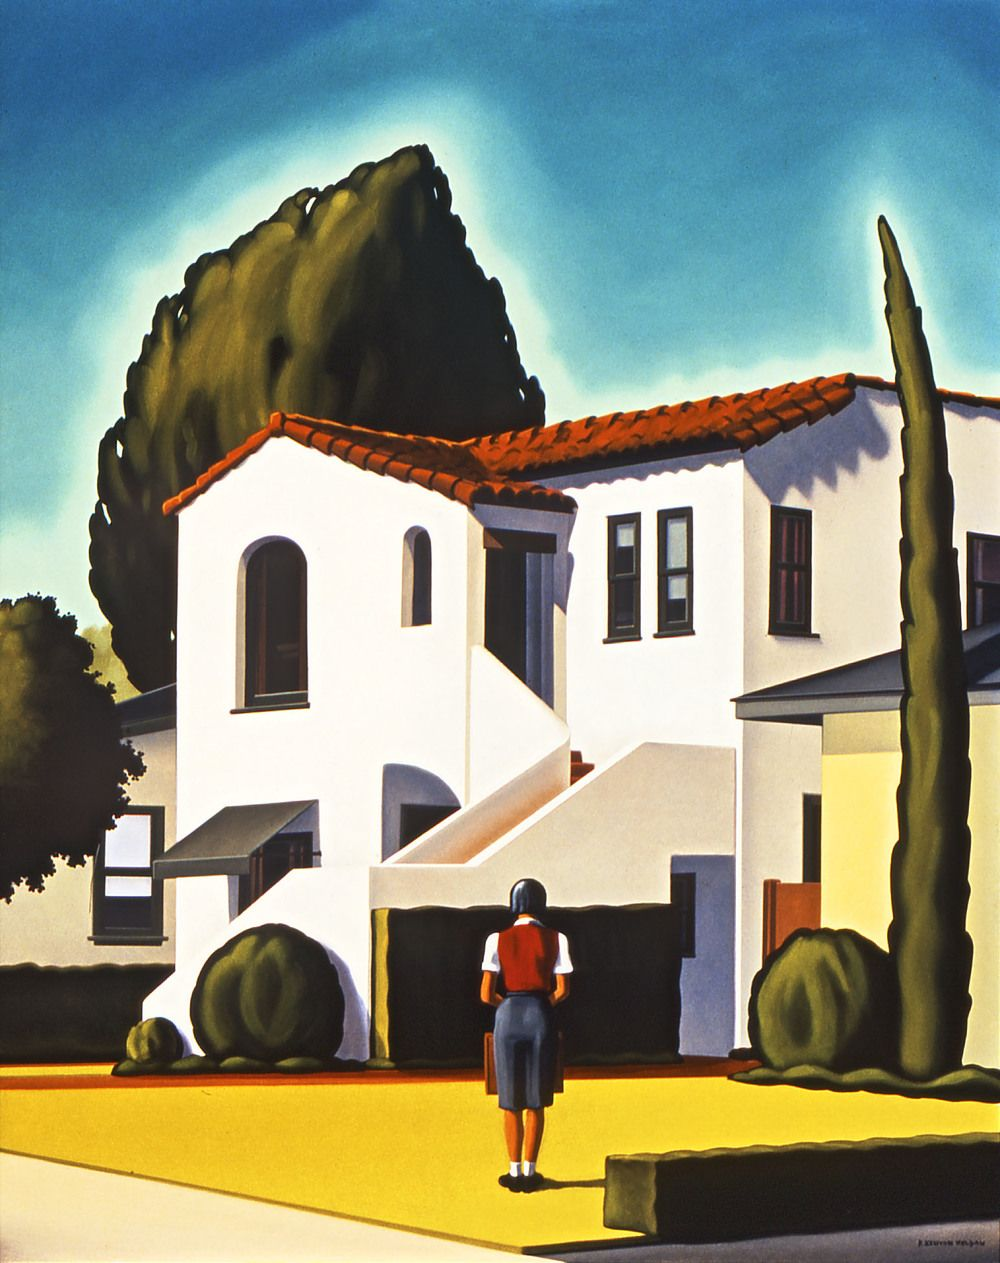 A Calculated Risk by R. Kenton Nelson